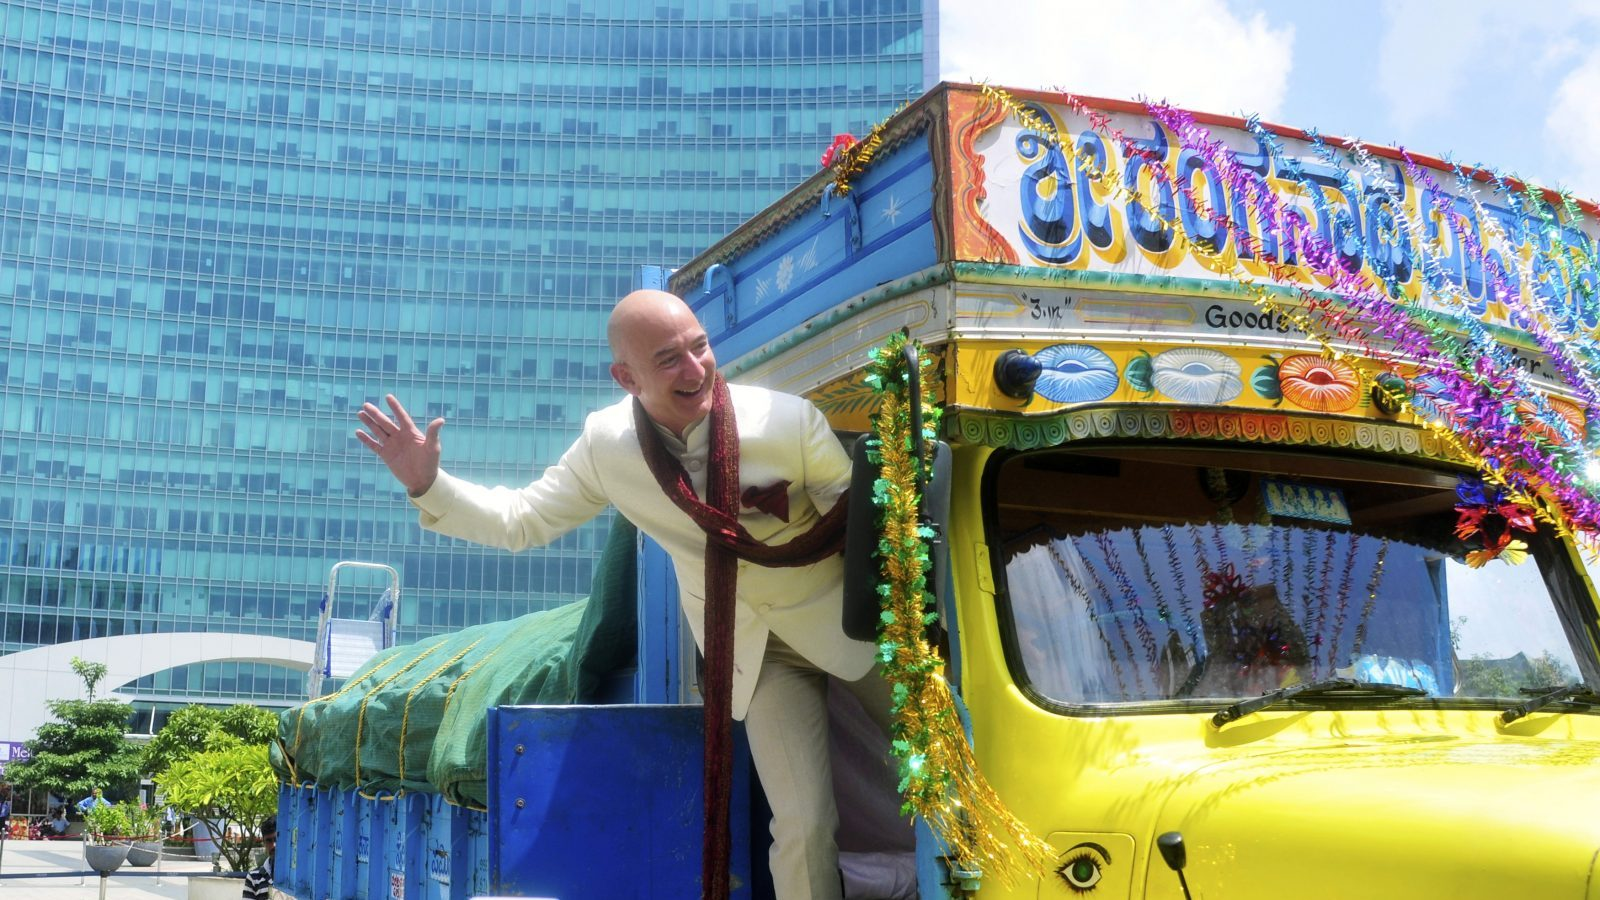 Jeff Bezos, founder and CEO of Amazon, poses as he stands on a supply truck during a photo opportunity at the premises of a shopping mall in the southern Indian city of Bangalore September 28, 2014. REUTERS/Abhishek N. Chinnappa (INDIA - Tags: BUSINESS) - GM1EA9S1K3201